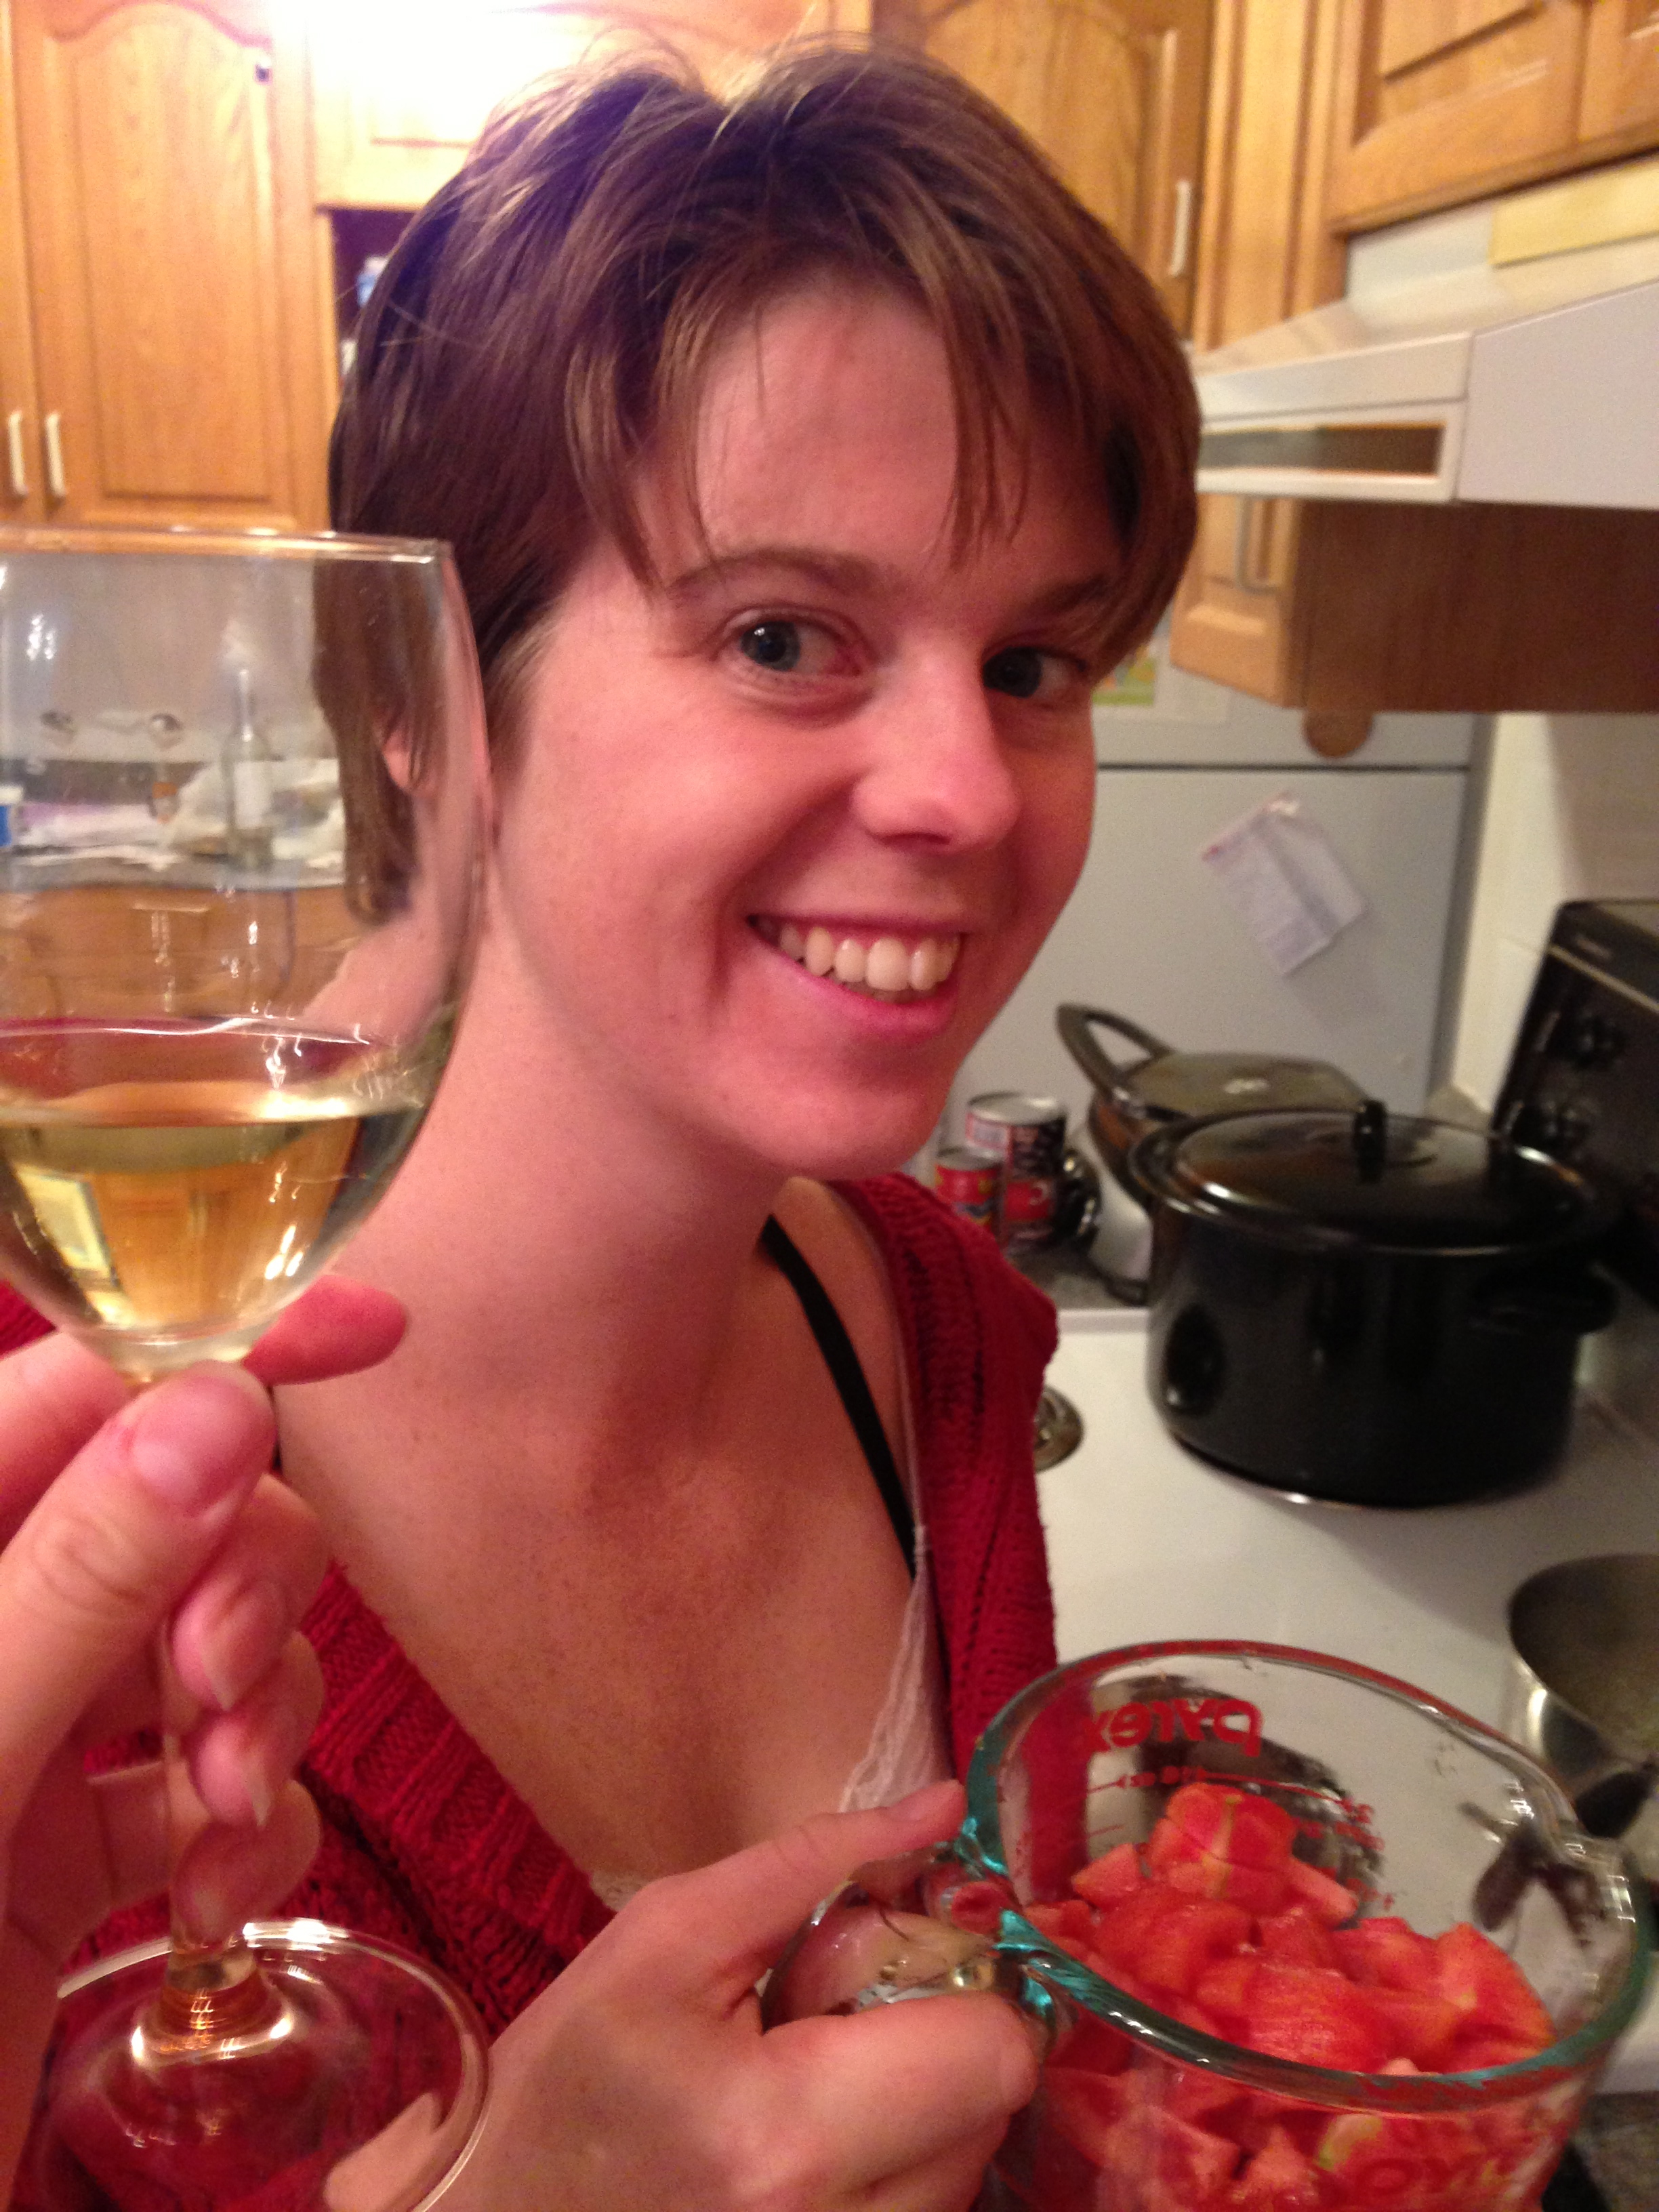 Wine, tomatoes and smiles!